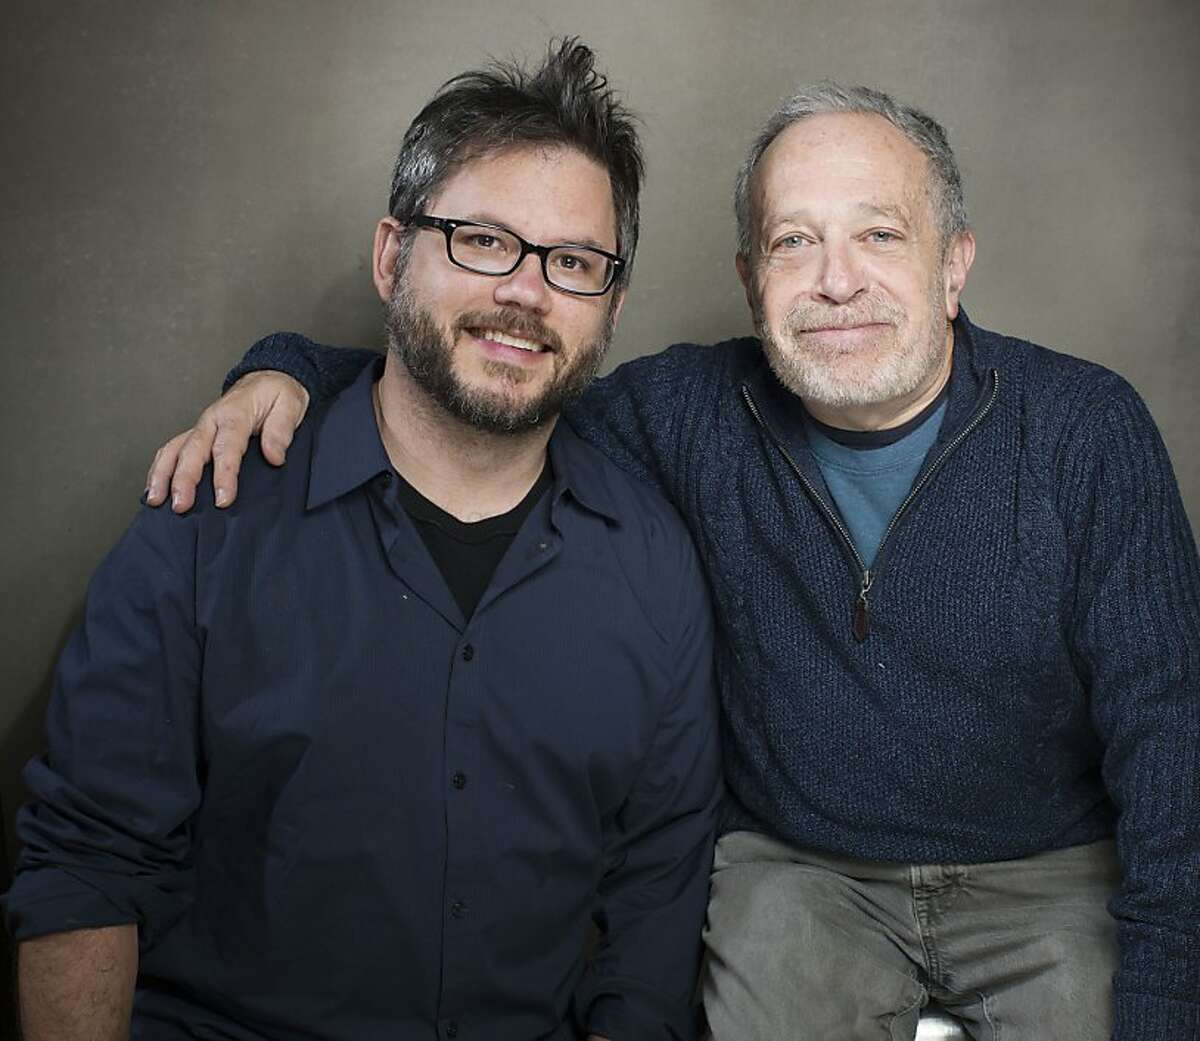 """Former U.S. Labor Secretary Robert Reich, right, looks to raise awareness of the country's widening economic gap between the wealthy and the middle class in the documentary """"Inequality for All,"""" directed by Jacob Kornbluth, left From left, director Jacob Kornbluth and author Robert Reich from the film """"Inequality For All"""" pose for a portrait during the 2013 Sundance Film Festival at the Fender Music Lodge on Monday, Jan. 21, 2013 in Park City, Utah. (Photo by Victoria Will/Invision/AP Images)"""